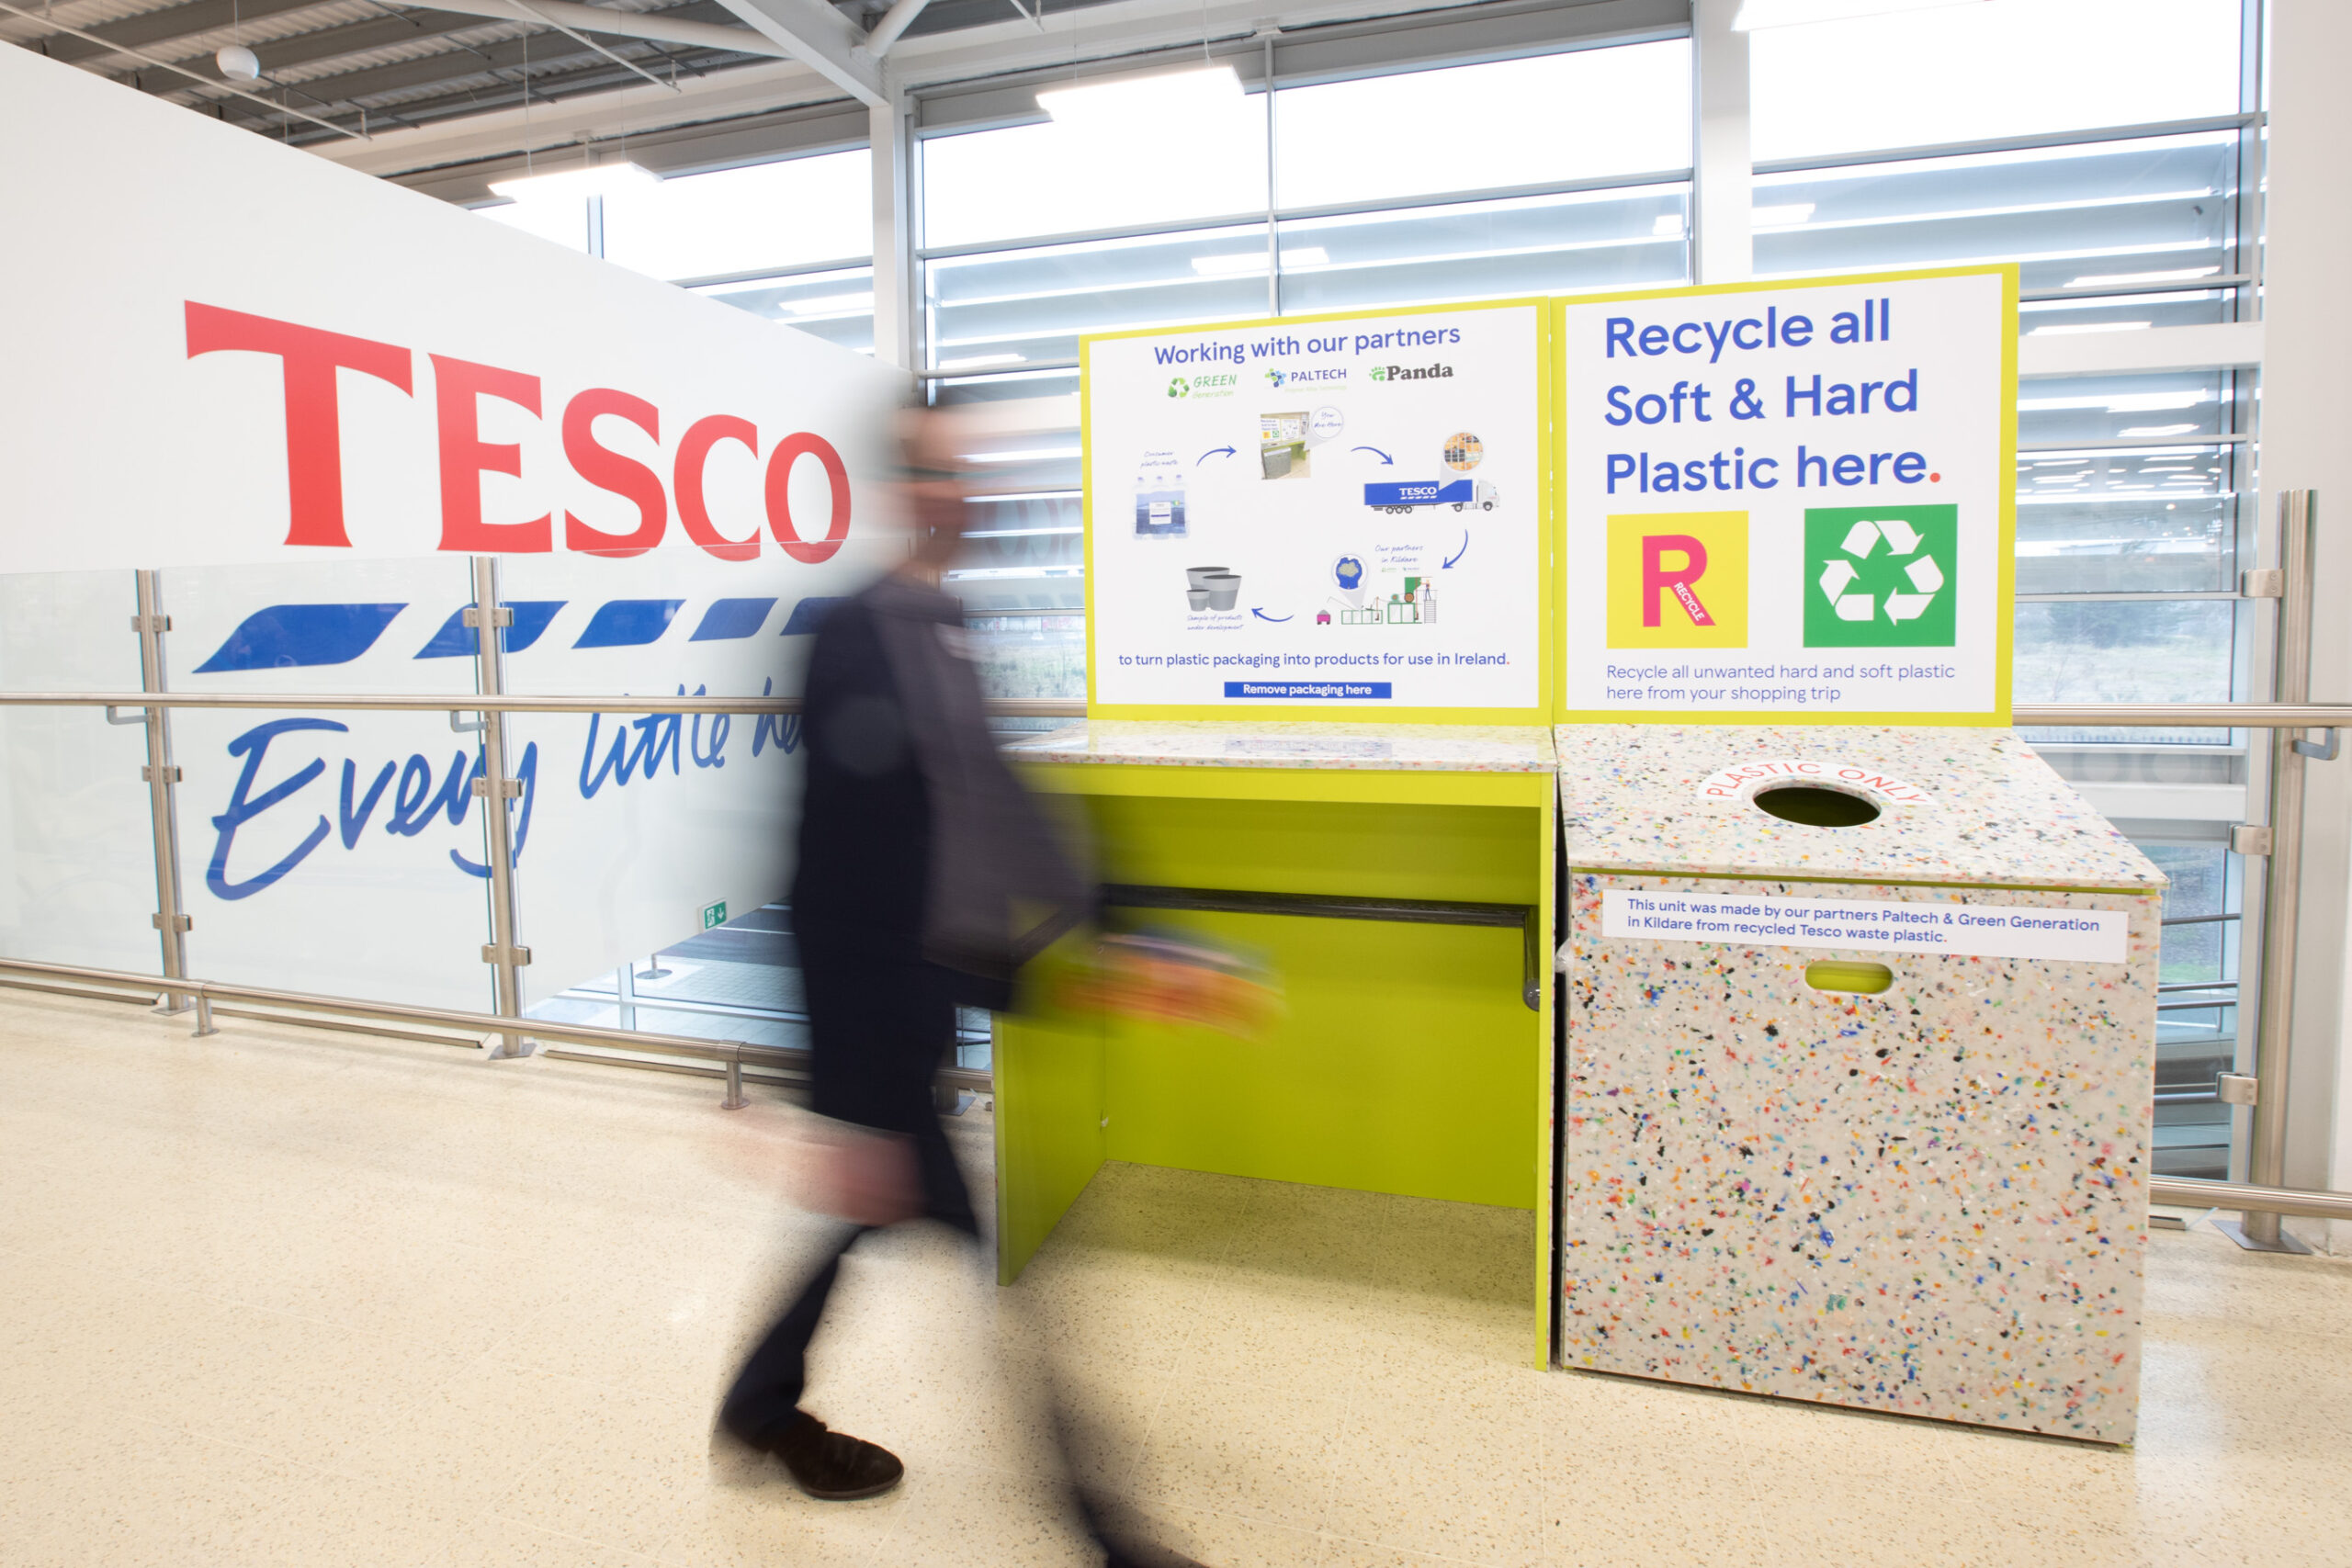 No repro fee 4-2-21 Tesco Ireland has today become the first Irish retailer to create a recycling solution for soft plastics. The retailer is rolling out soft-plasticcollection points (pictured) for customers at its 151 stores nationwide and by March this year will accept unwanted soft-plastics from customers at the end of their shopping trip. Partnering withindigenous Galway basedstart-up Paltech, who have created a patented technology, soft plastics will be flaked and processed into construction materials to be used in the Tesco Ireland store network for new stores, in store maintenance and refits including buildings, car-park barriers and signage, in the near future.Pic:Naoise Culhane-no fee